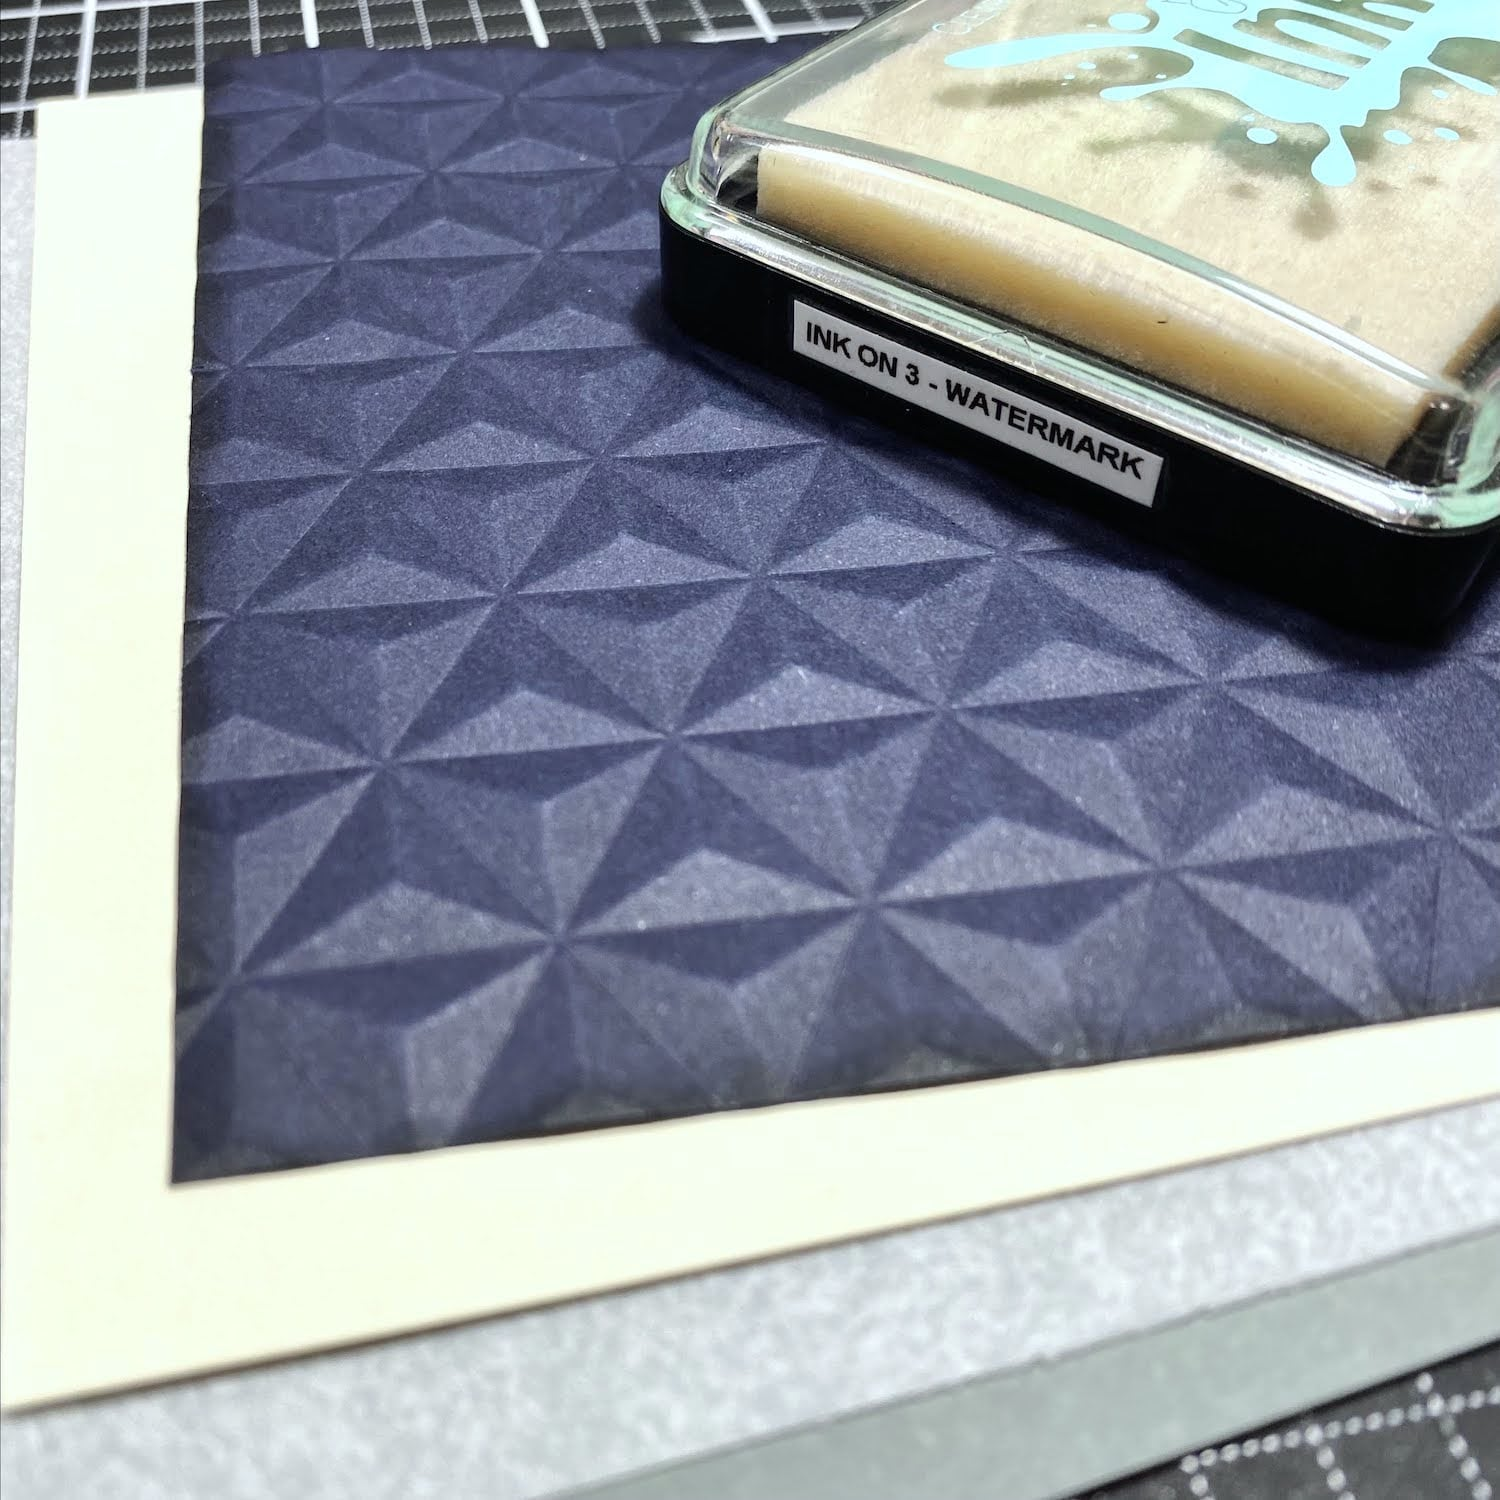 adding Ink on 3 watermark ink to embossed background edges